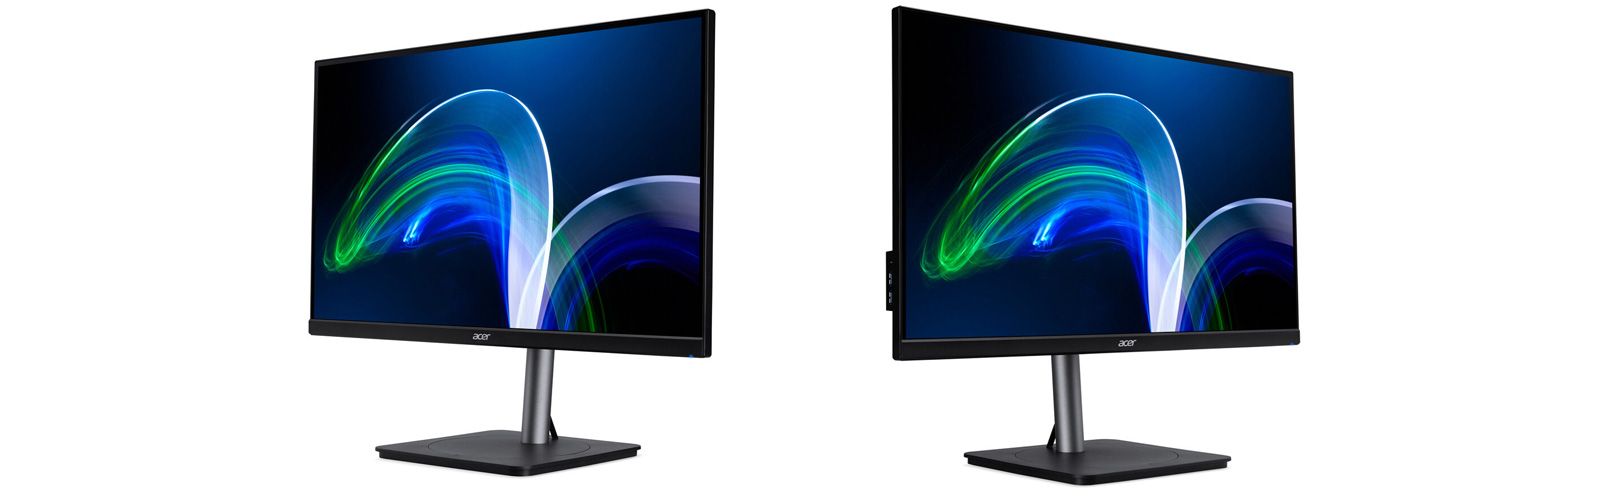 """The Acer CB273U is a new Eyesafe 27"""" QHD IPS display with Delta E<1 color accuracy, AMD FreeSync"""